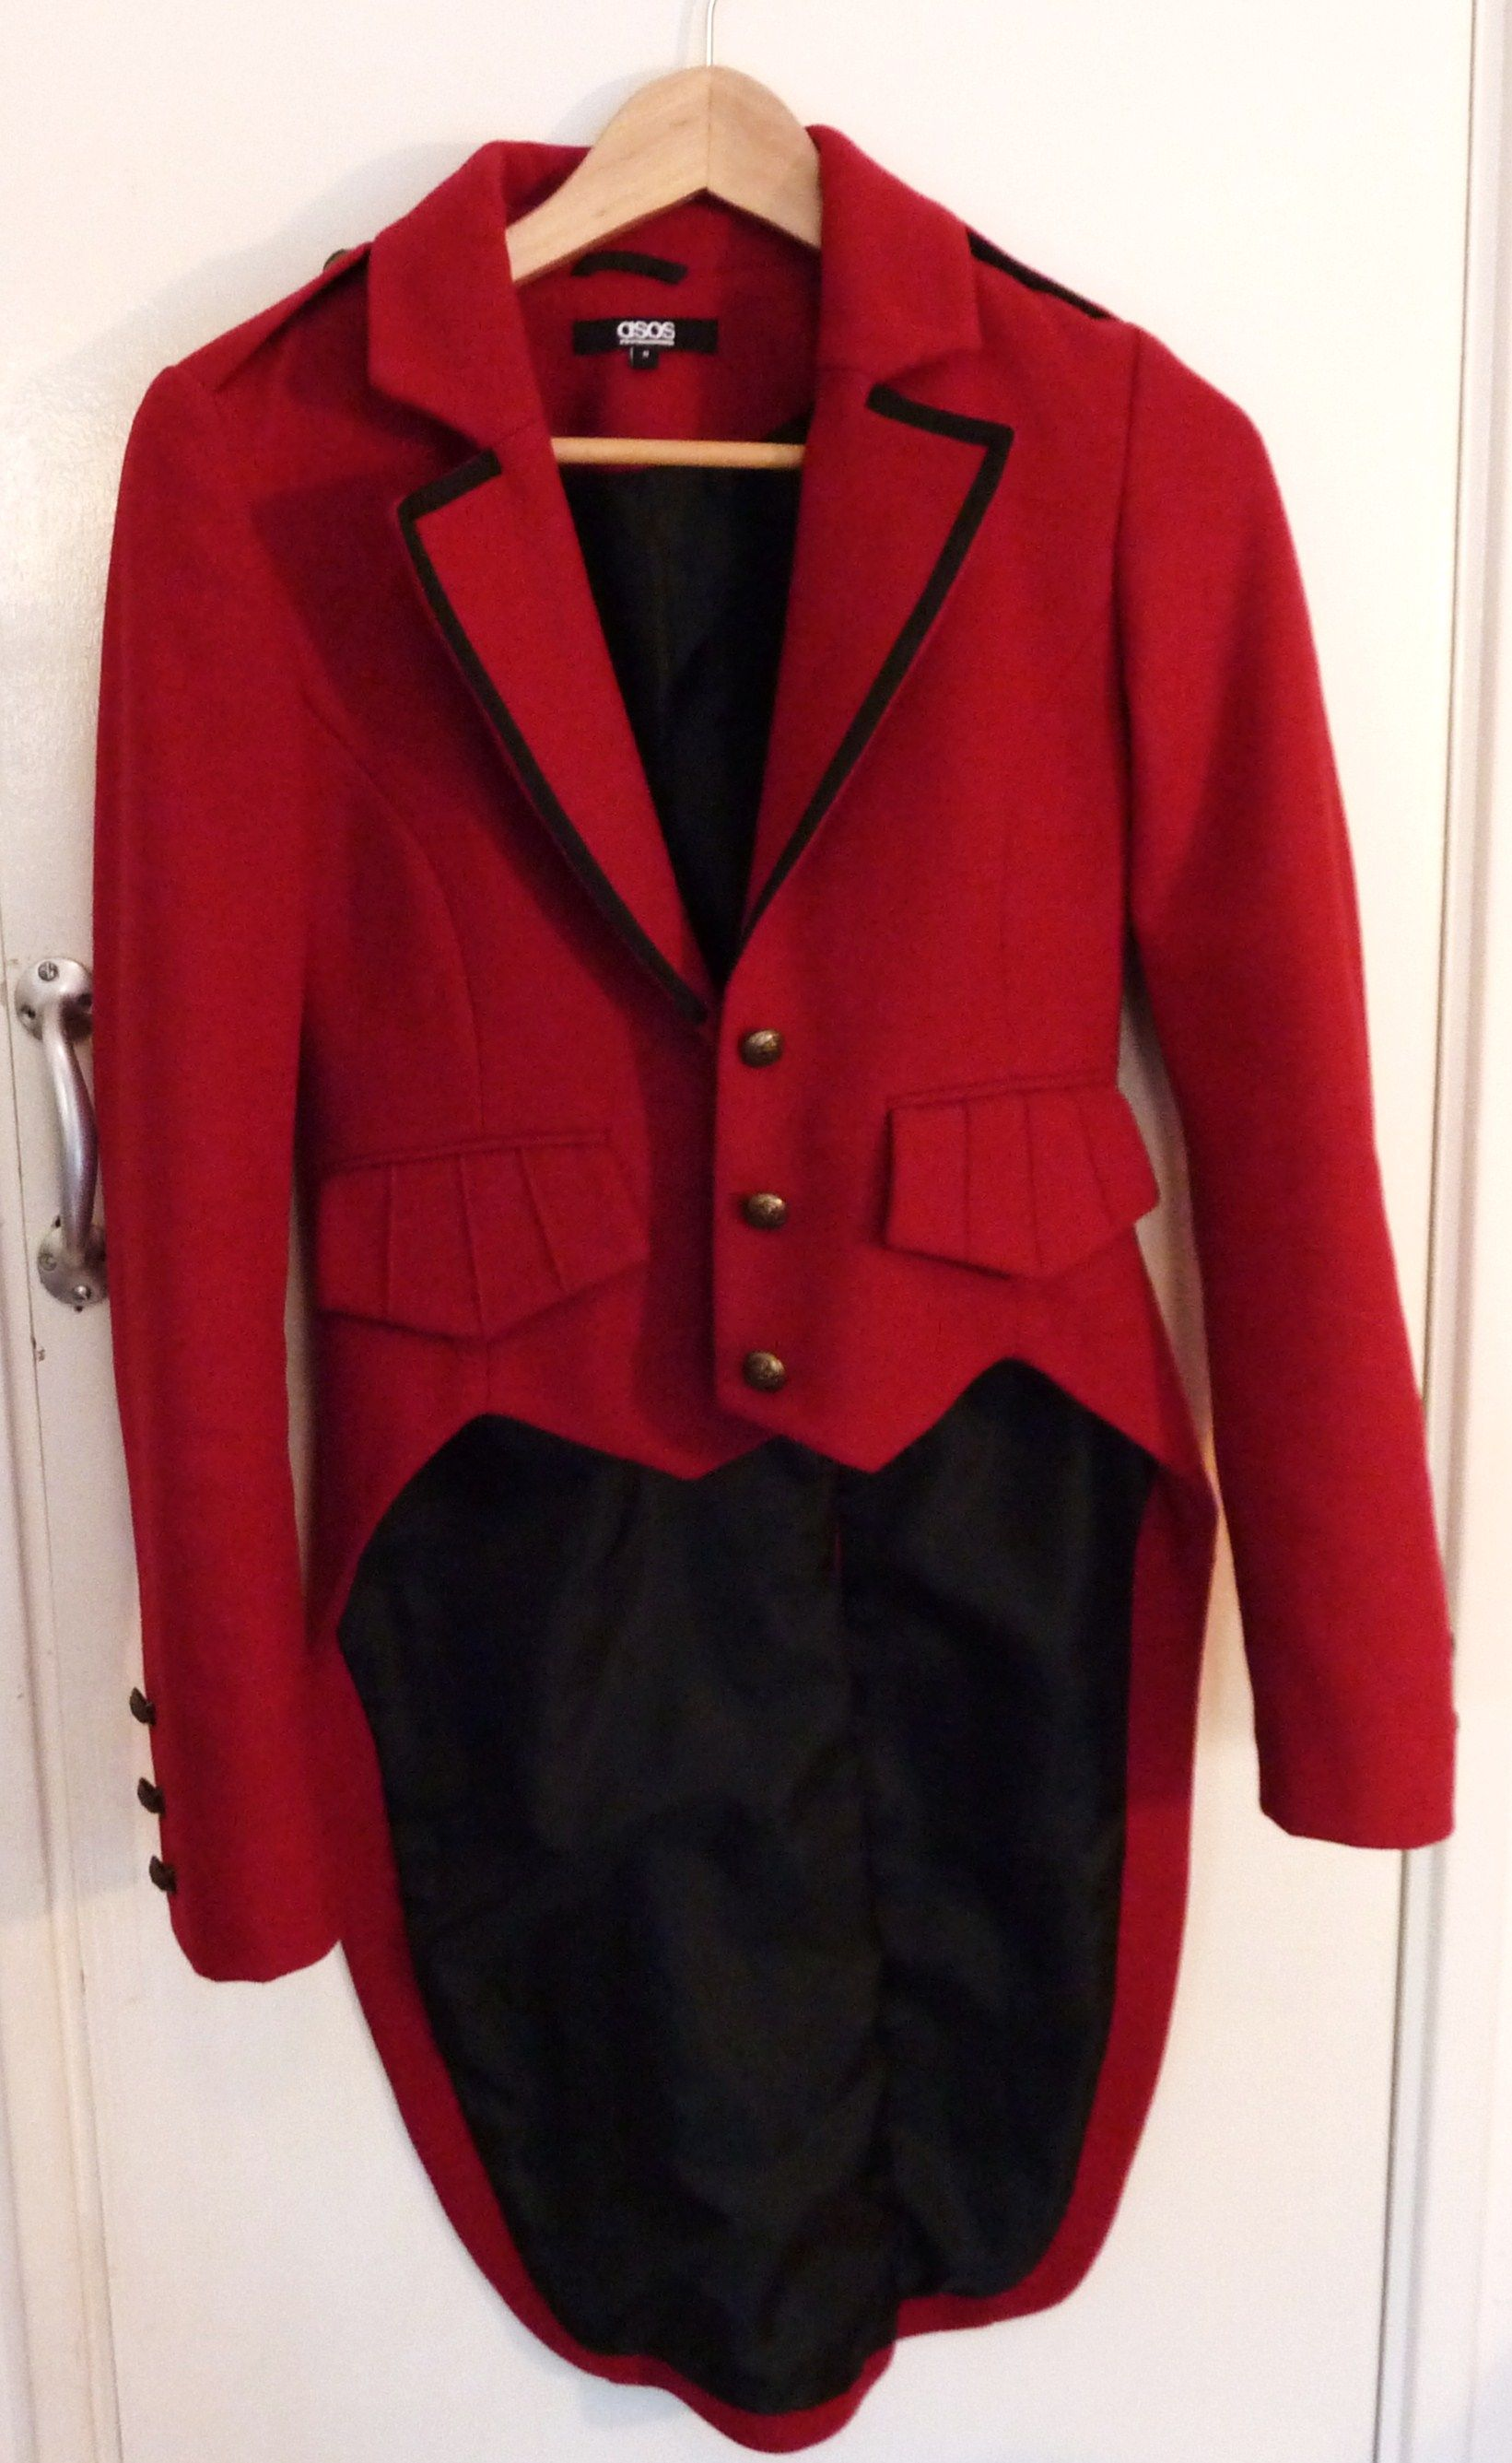 ASOS RED MILITARY JACKET (RINGMASTER STYLE), SIZE 8 – SOLD ...